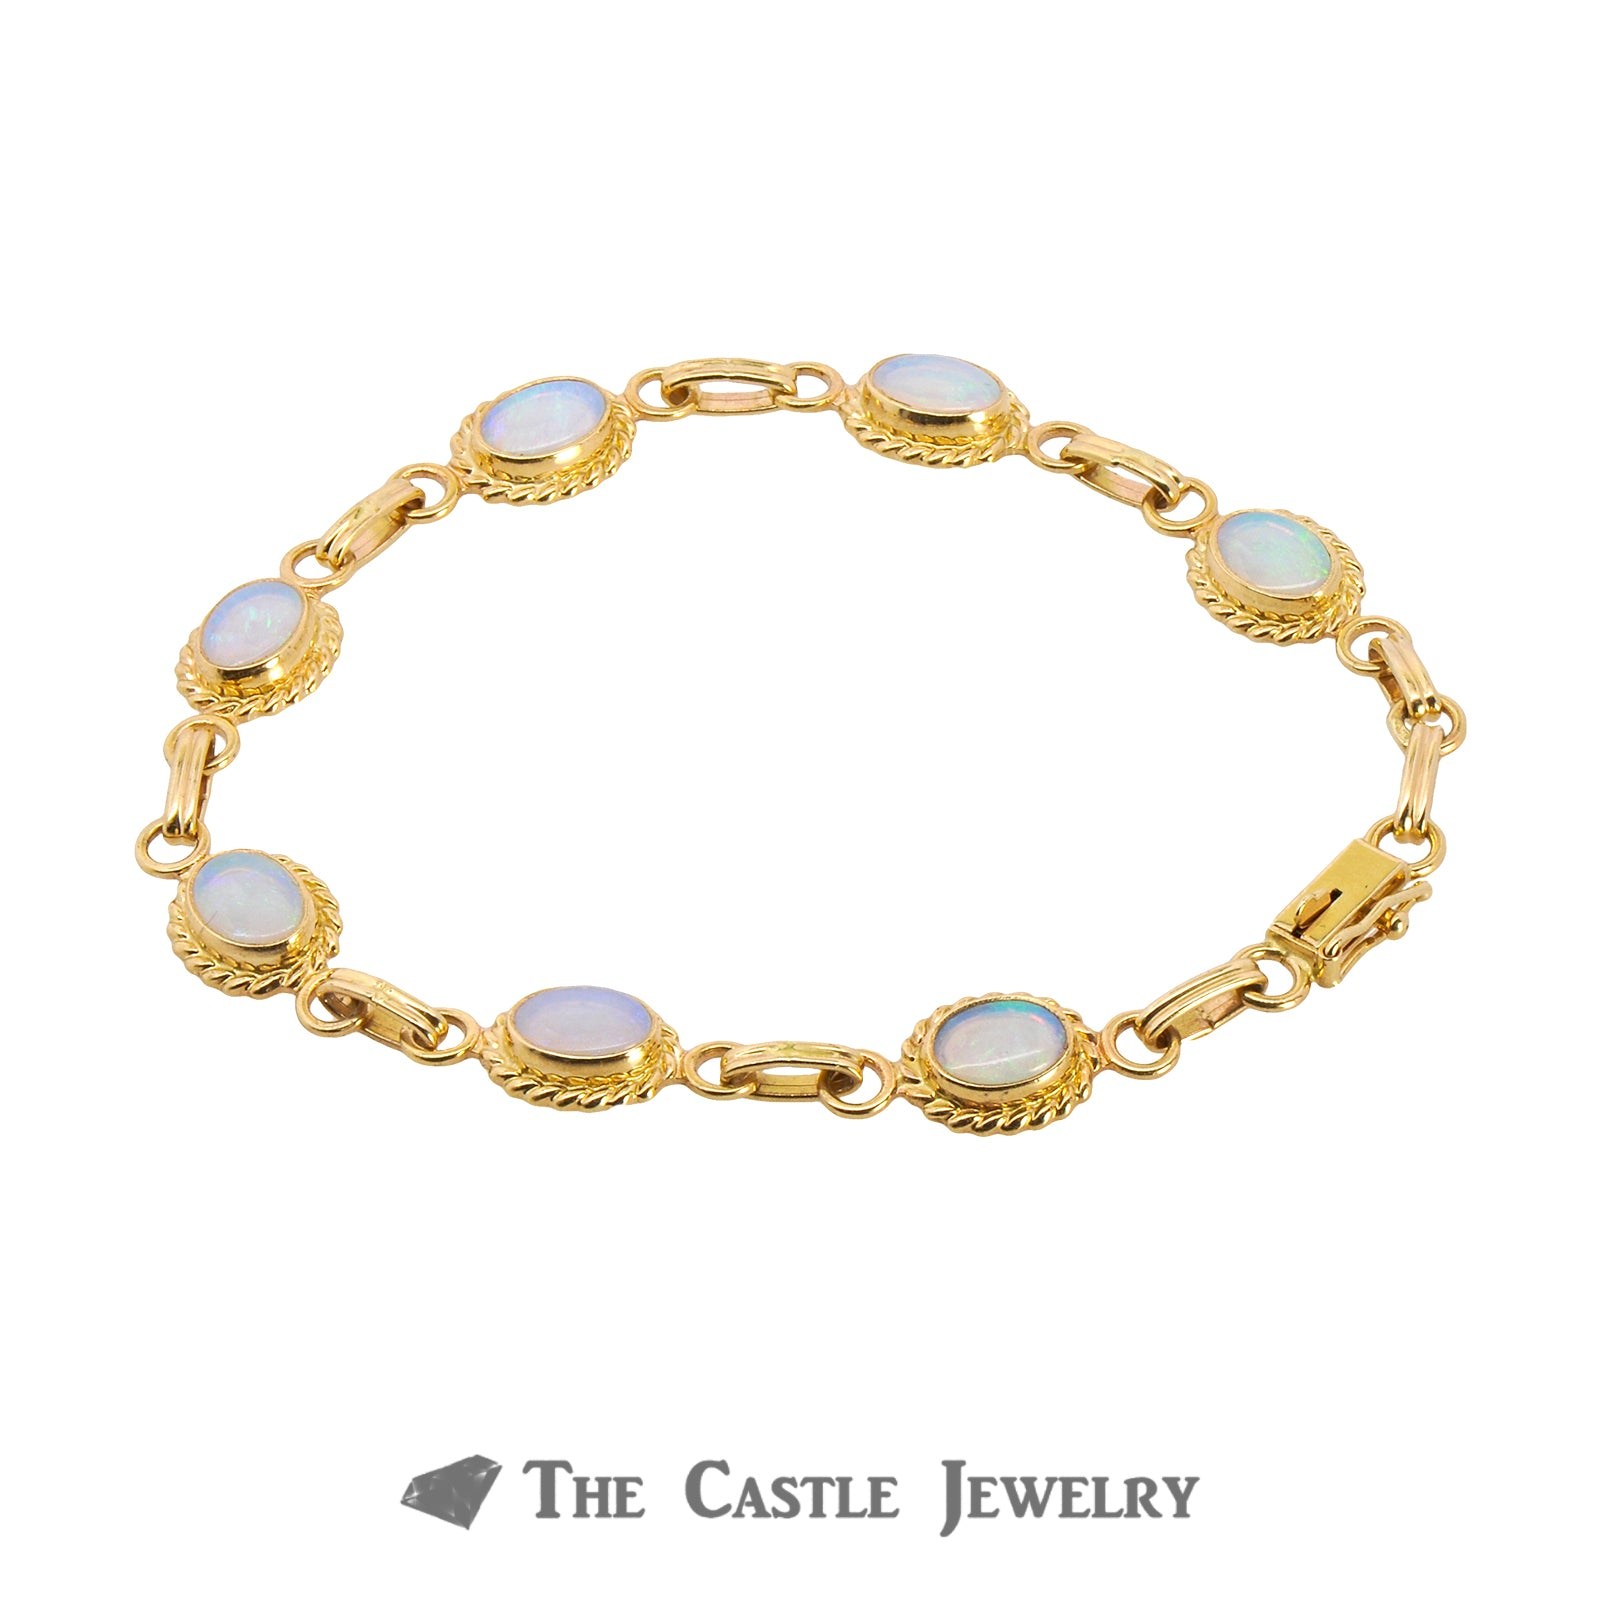 "7"" Oval Opal Bracelet with Rope Design Bezels Crafted in 14K Yellow Gold"